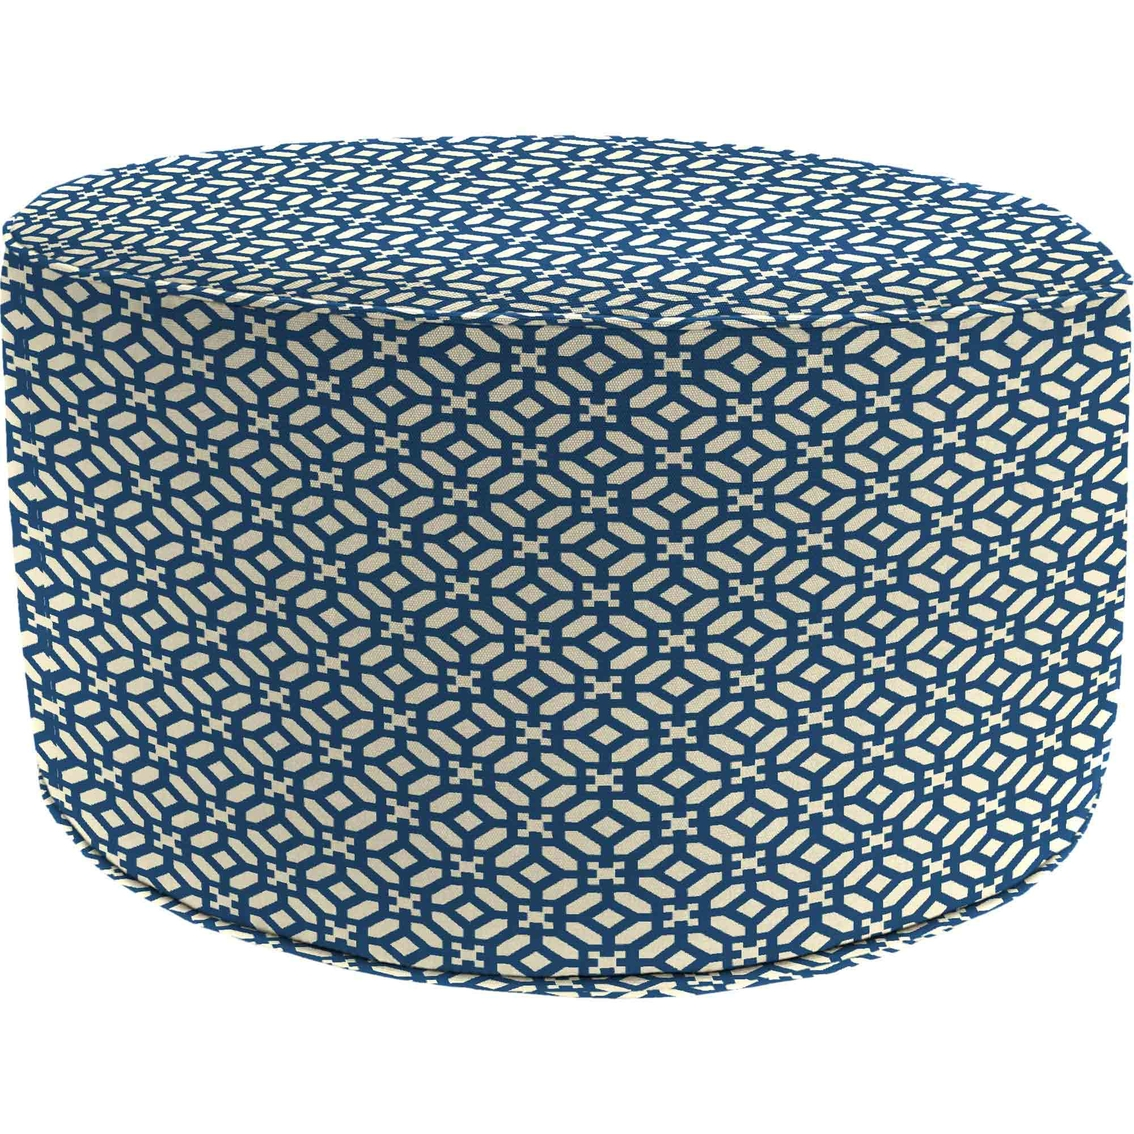 Prime Jordan 24 In Round Pouf Ottoman Tables Chairs More Squirreltailoven Fun Painted Chair Ideas Images Squirreltailovenorg